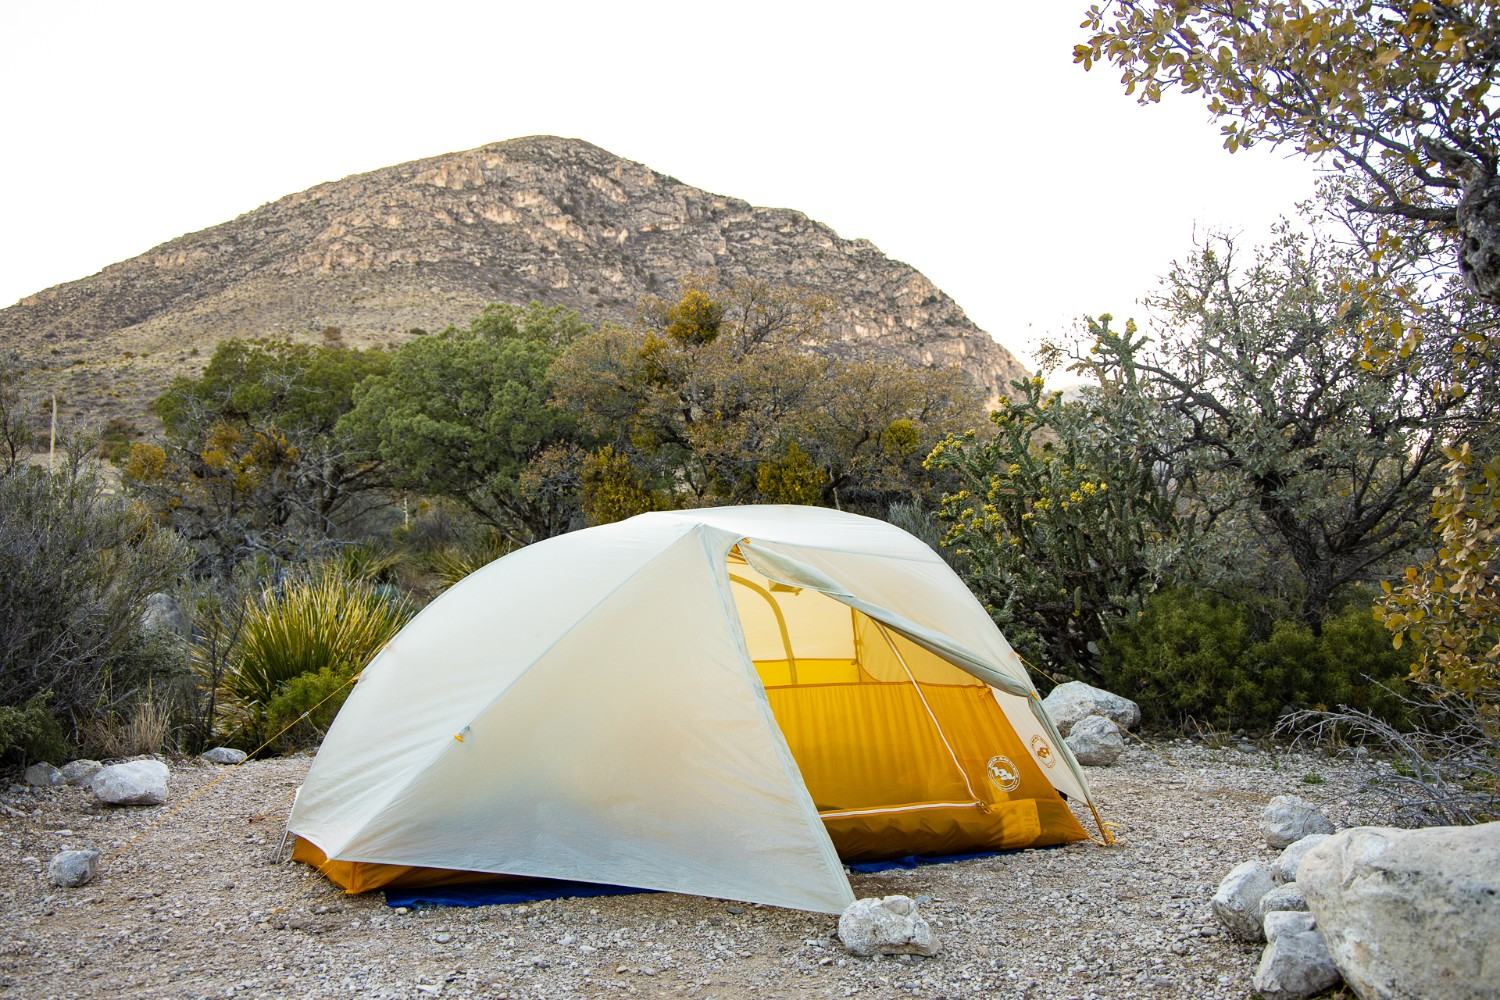 Camping 101 - choosing a spot for your tent in a clearing